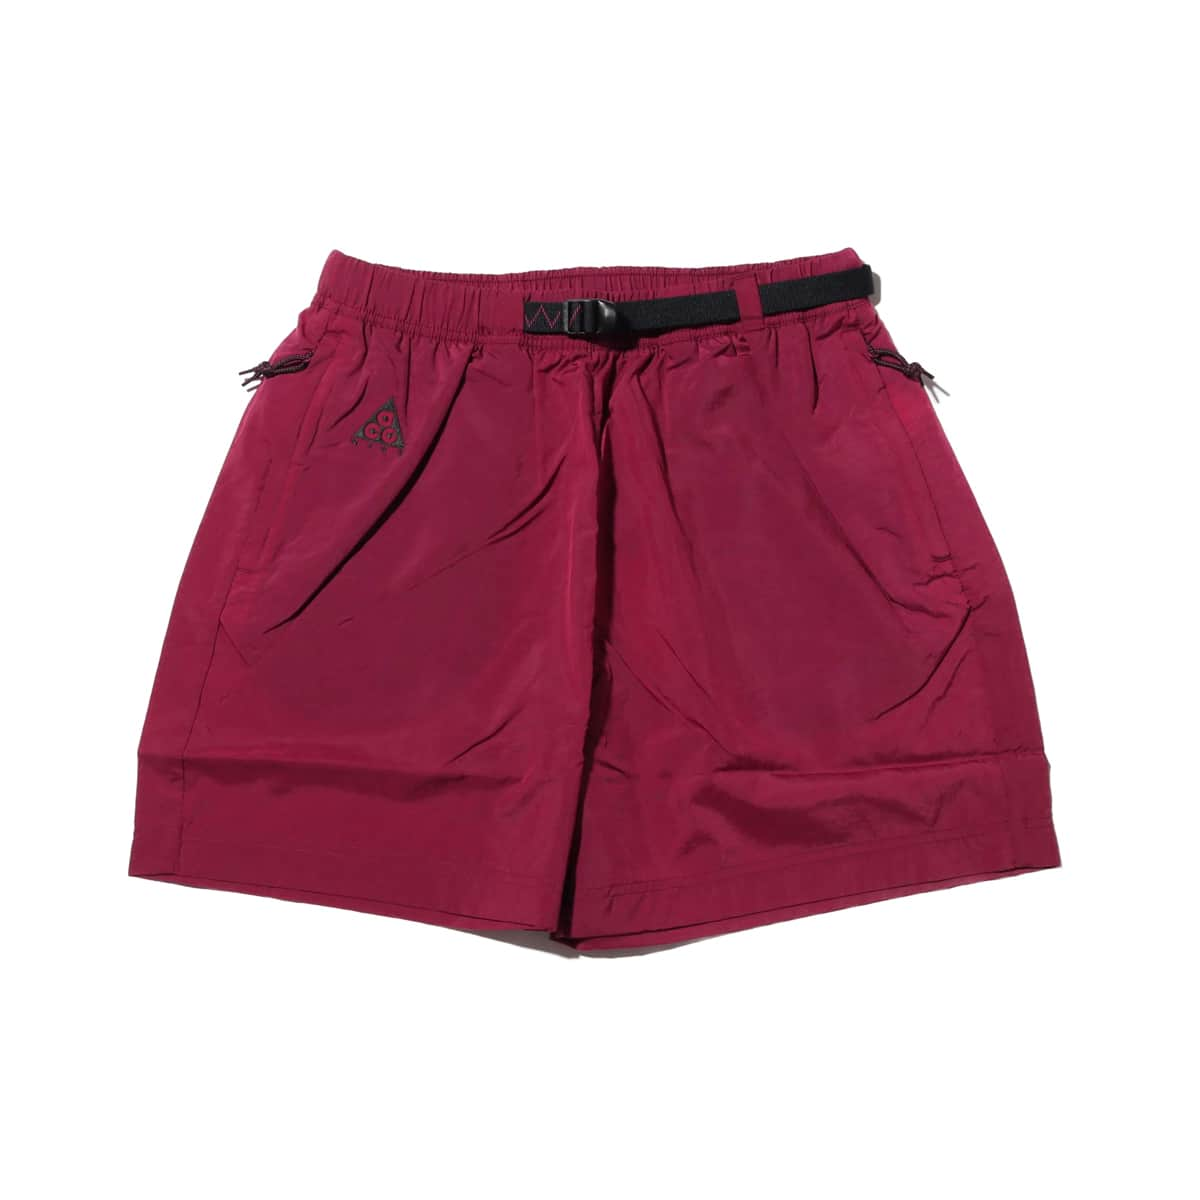 NIKE AS M ACG WOVEN SHORT VILLAIN RED 20SP-S_photo_large